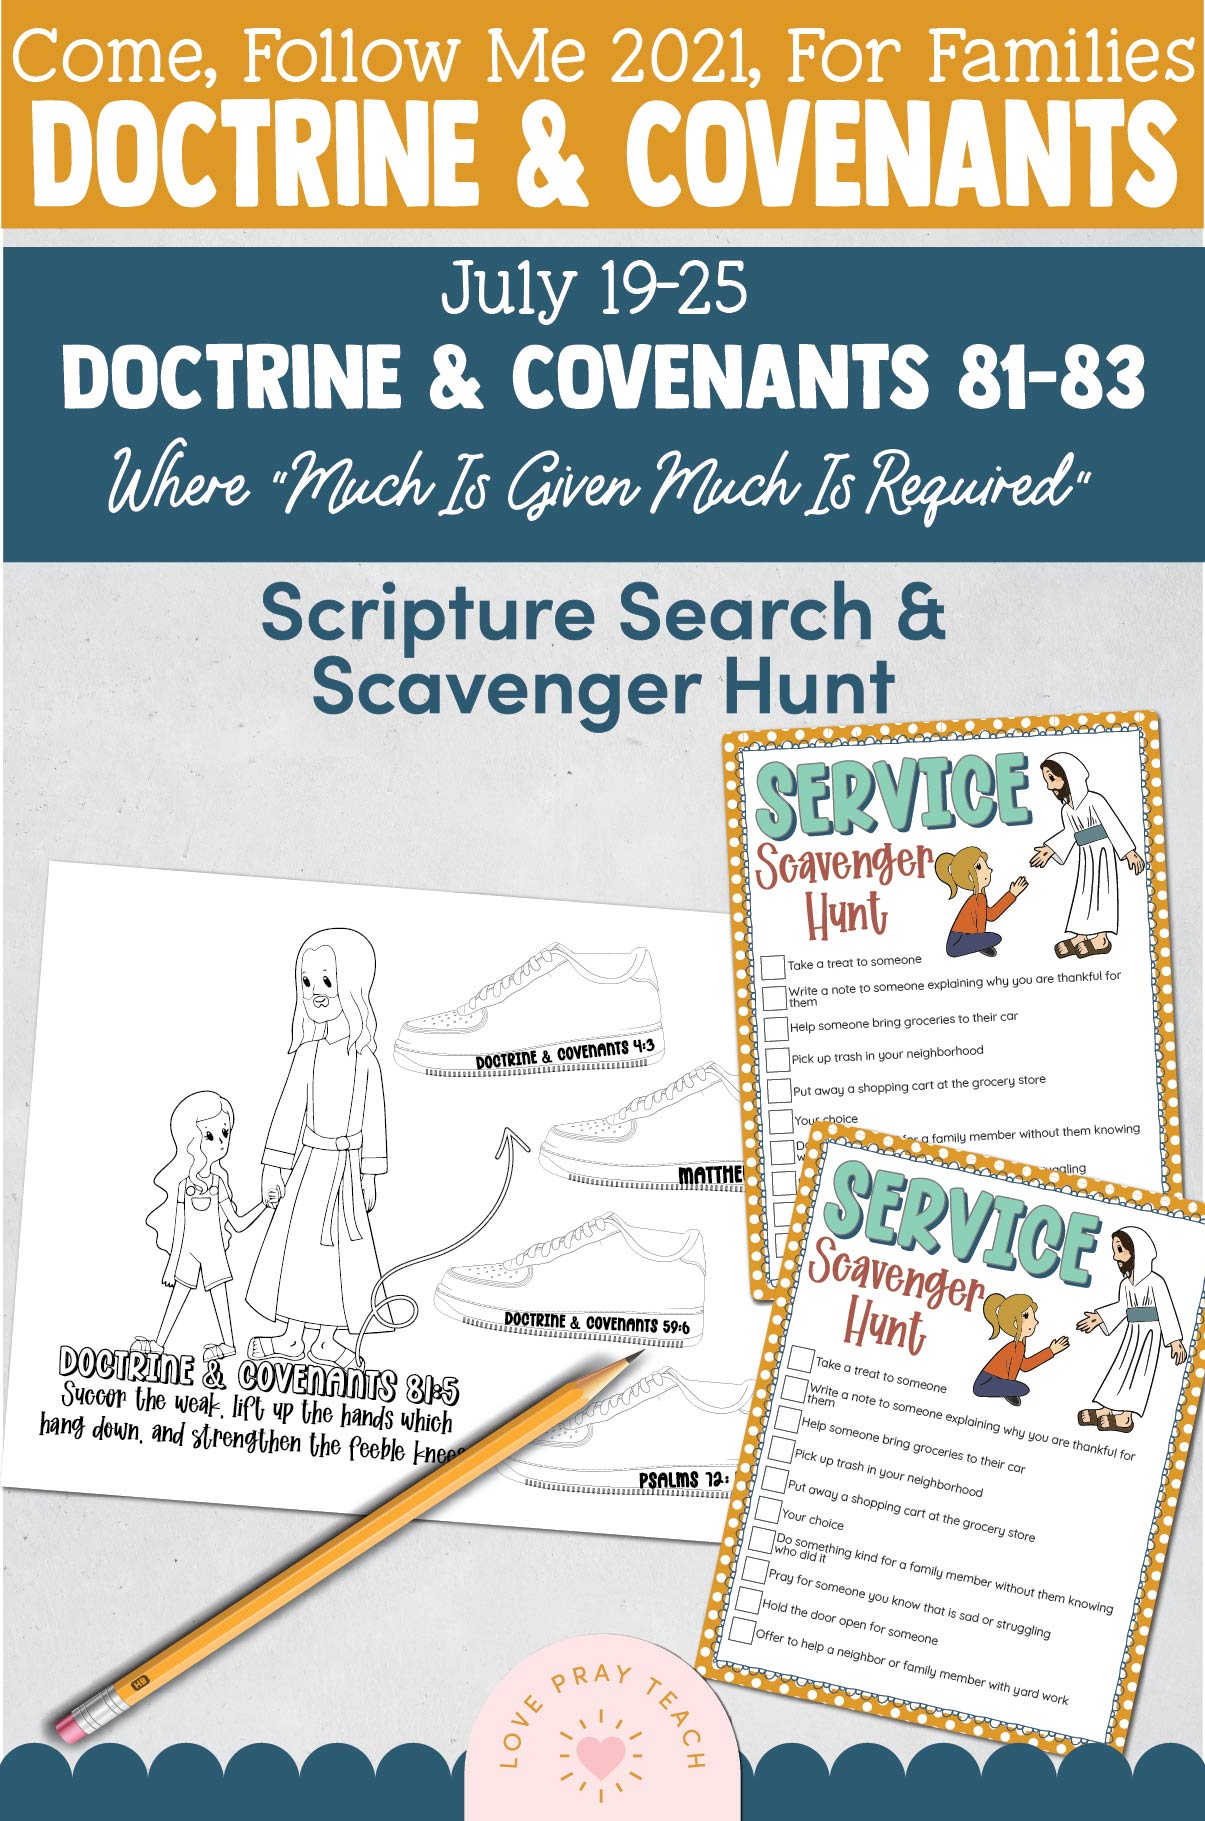 """Come, Follow Me—For Individuals and Families: Doctrine And Covenants 2021, July Week 4 Doctrine and Covenants 81-83: July 19-25, Where """"Much Is Given Much Is Required"""""""